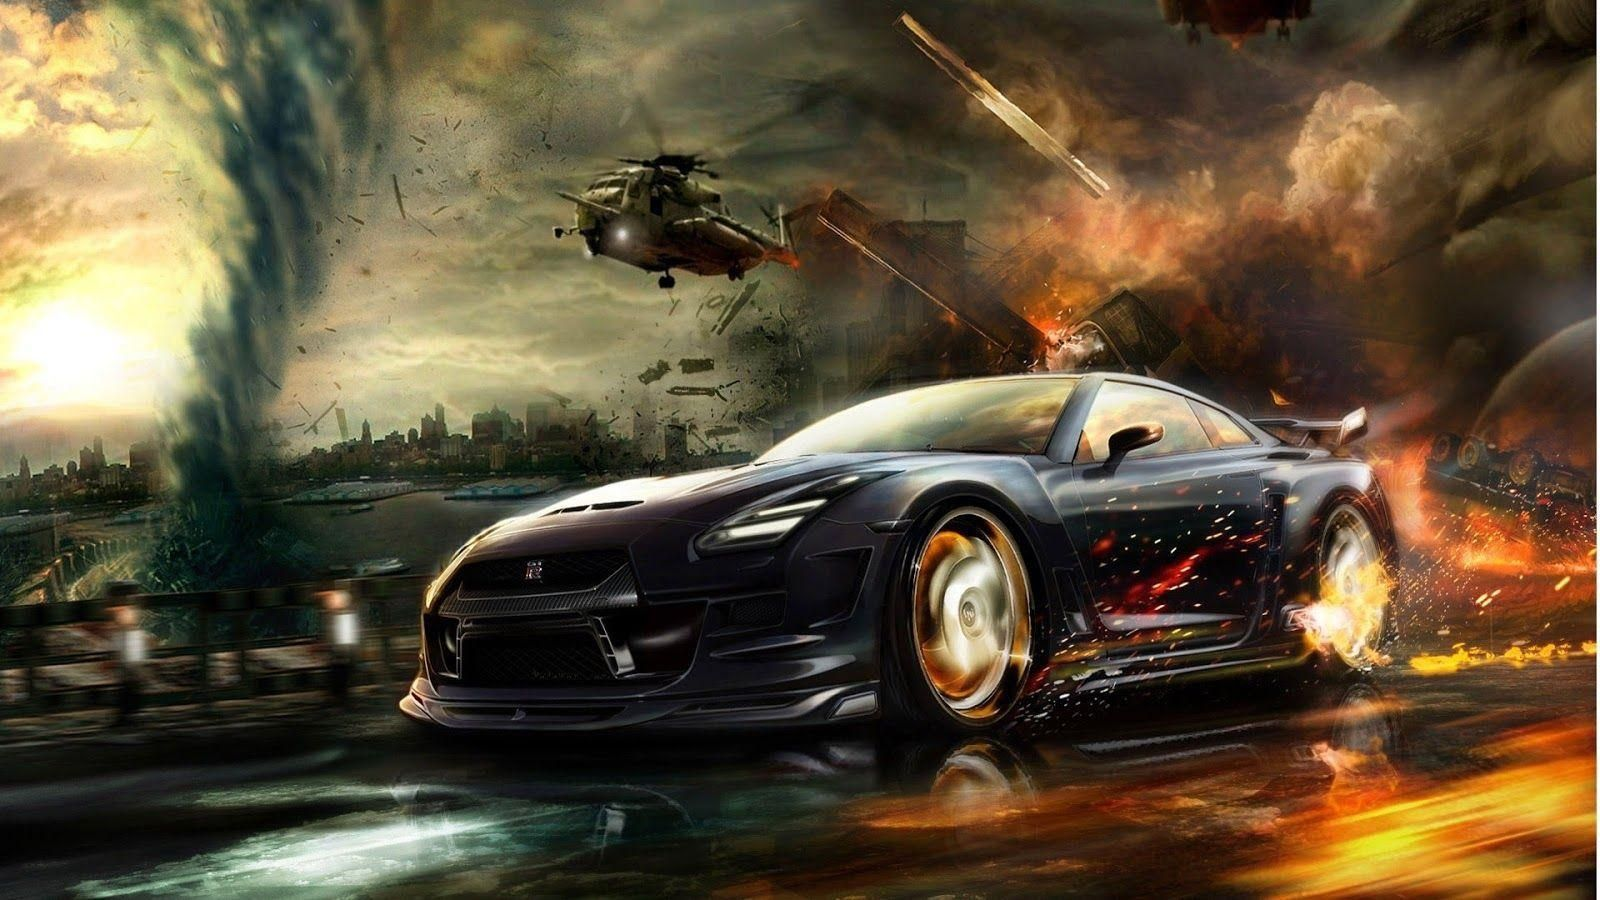 Cool Wallpaper Car Mywallpapers Site Cool Wallpapers Cars Cool Car Wallpapers Hd Car Wallpapers